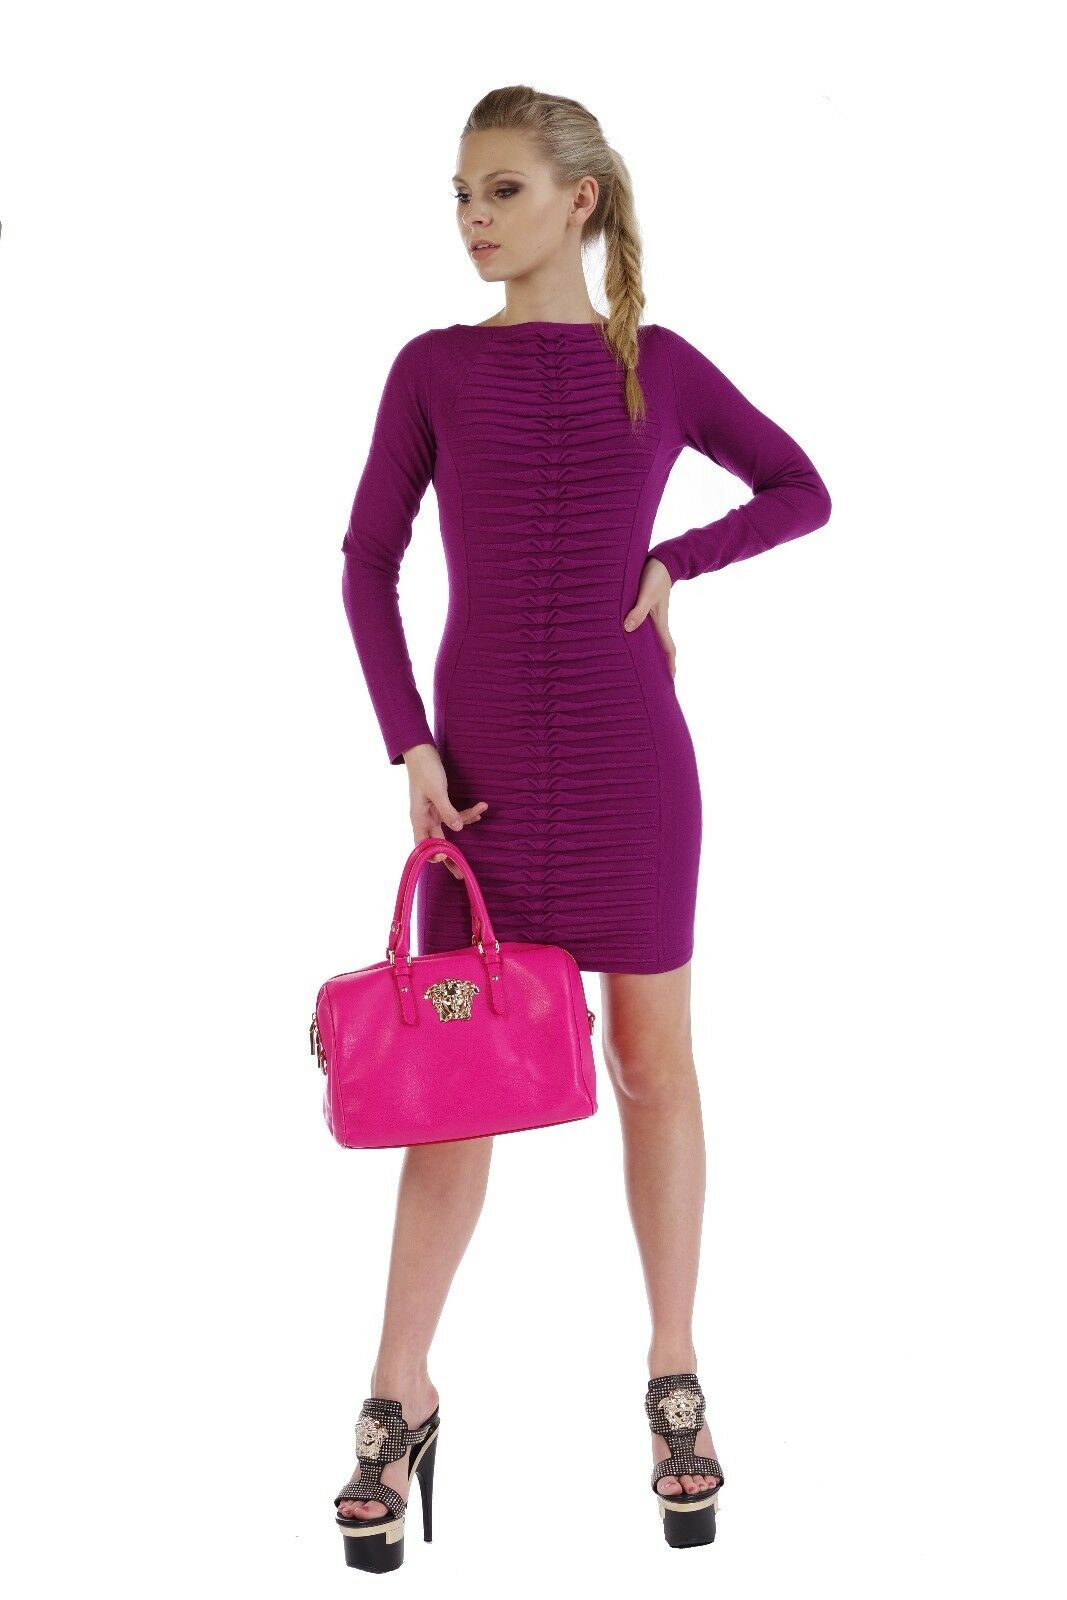 New Versace Collection Magenta Knit Long Sleeve Dress 38 - 4